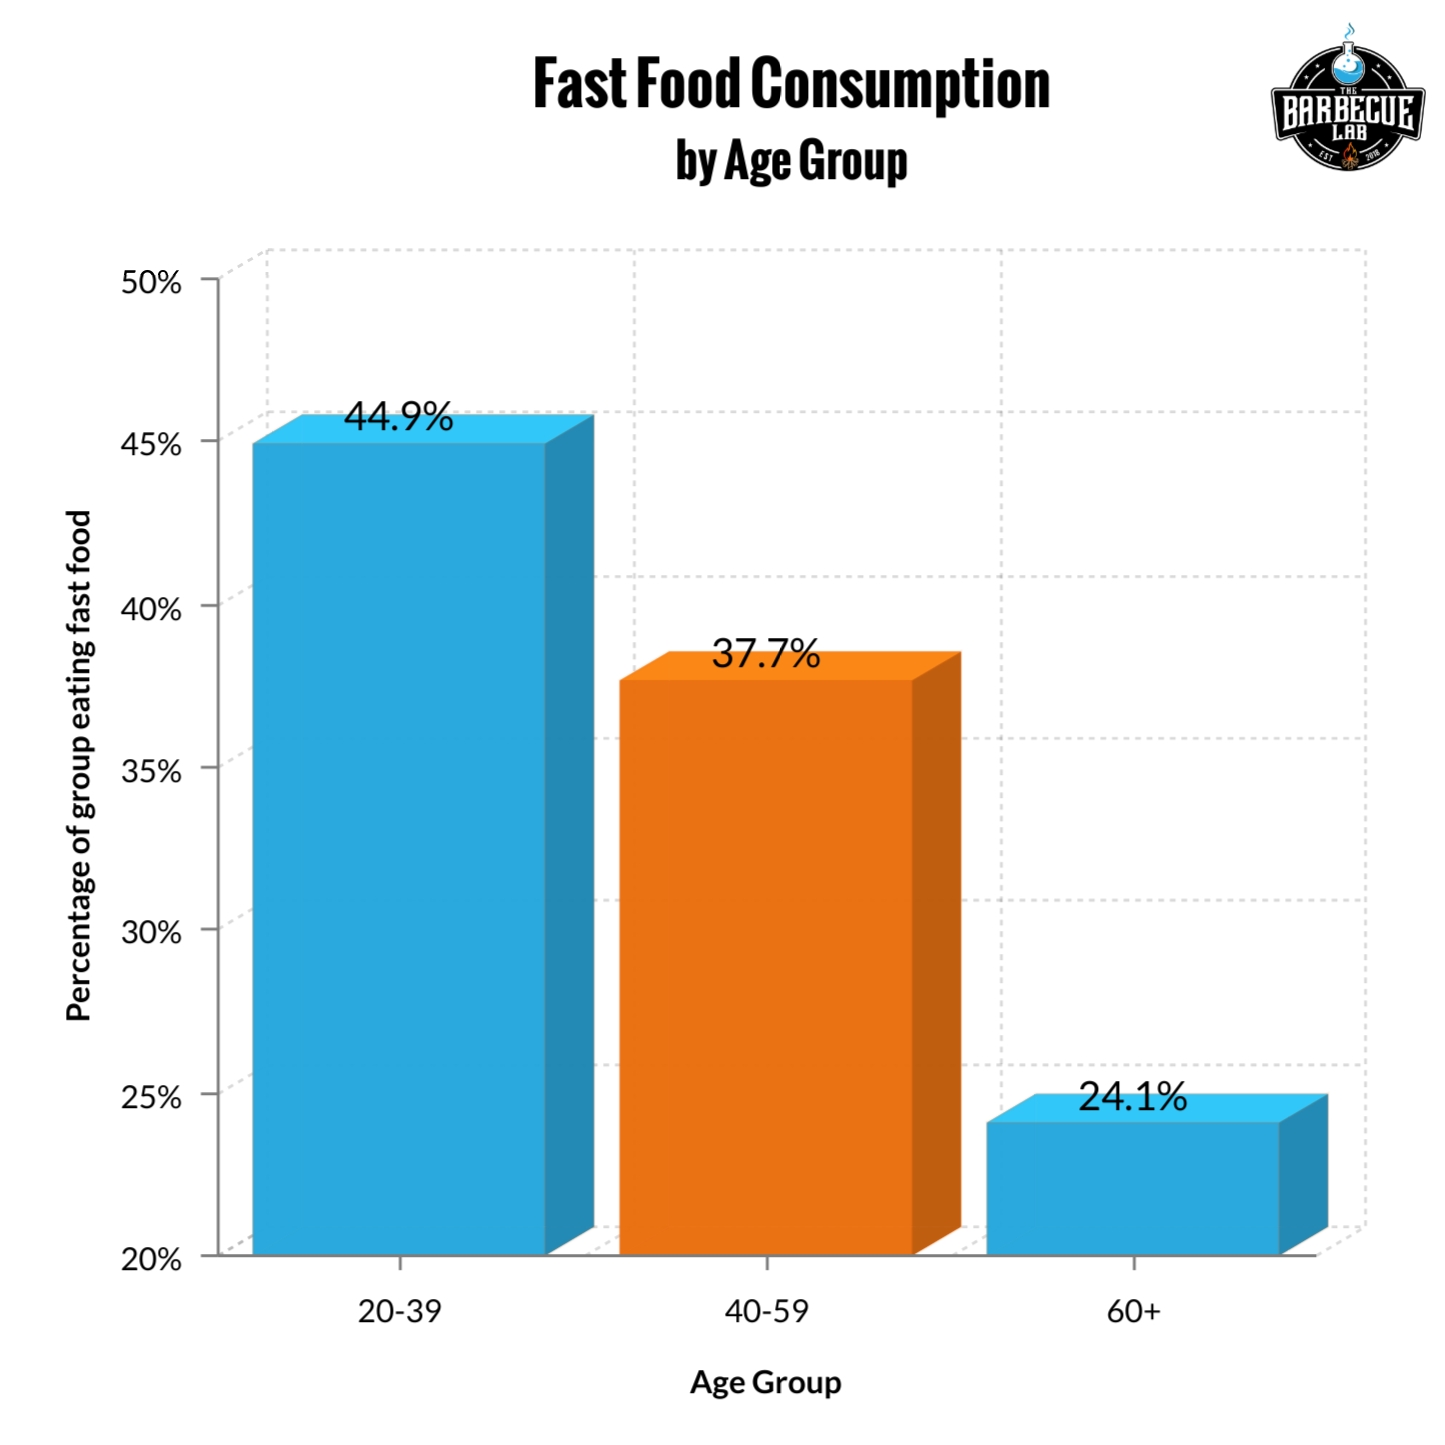 bar graph showing fast food consumption by age group